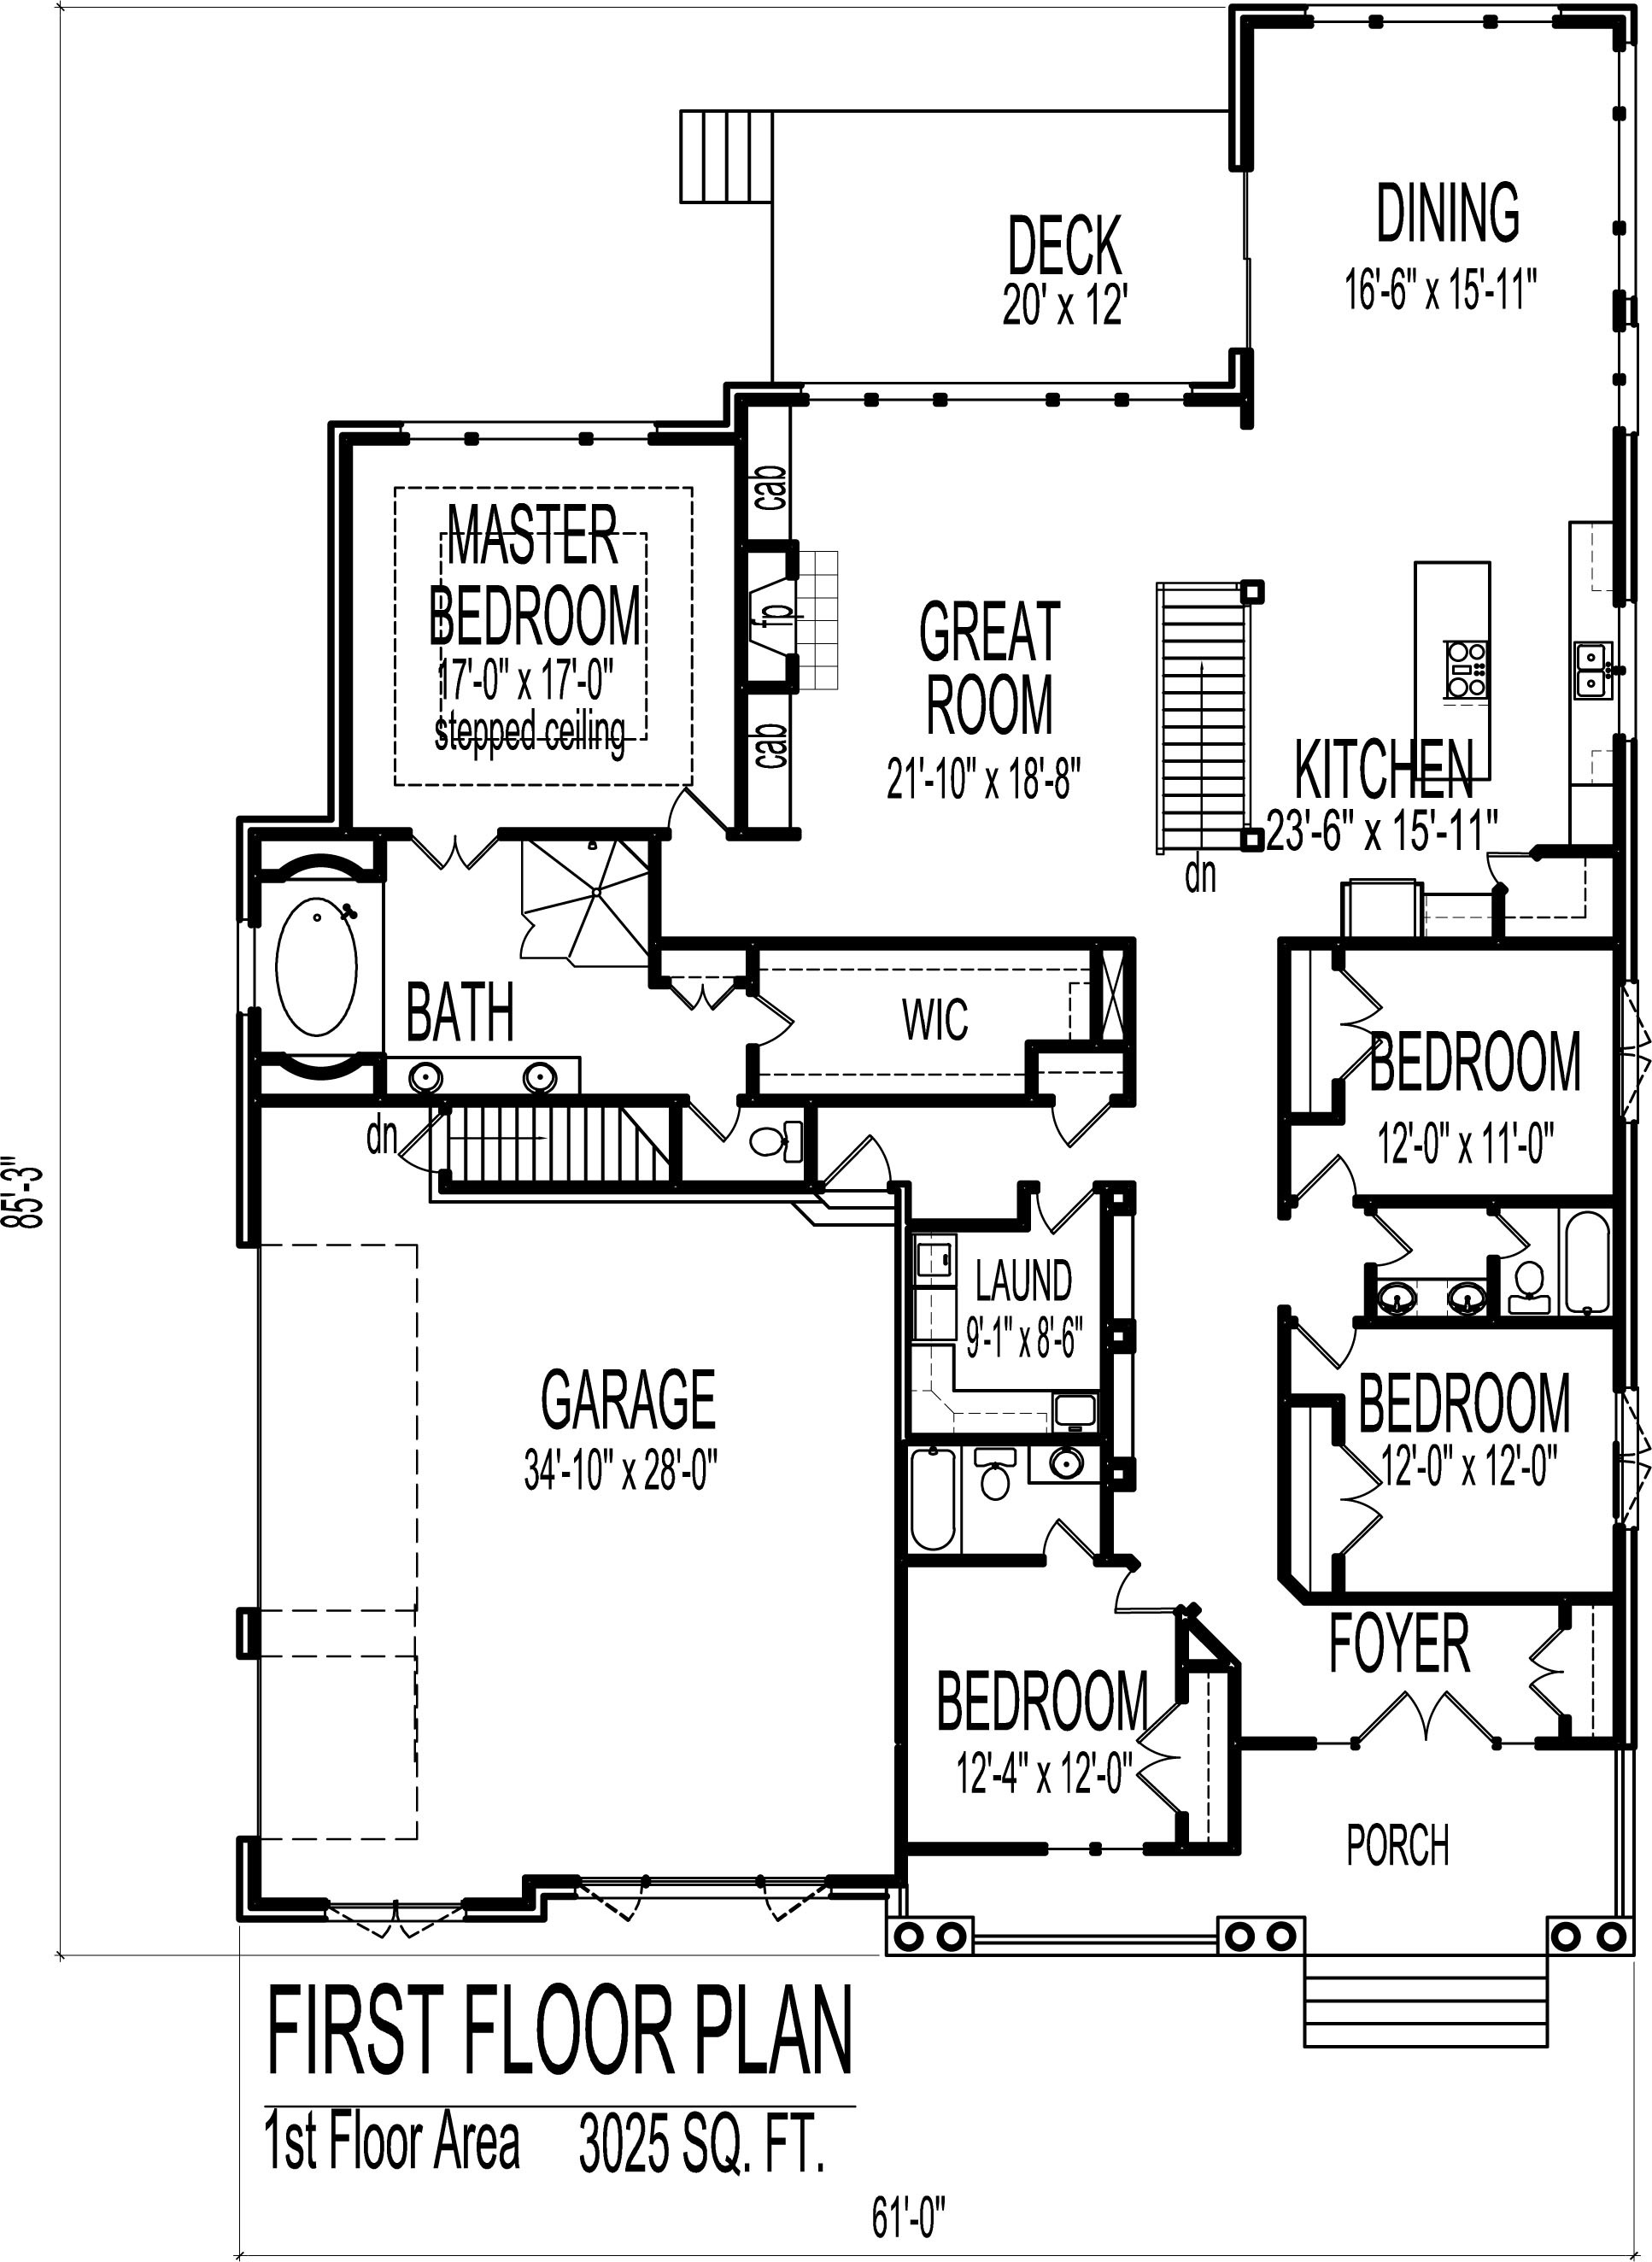 House Plans 2500 Sq Ft One Story Best Of English Cottage House Floor Plans European 4 Bedroom 1 Story